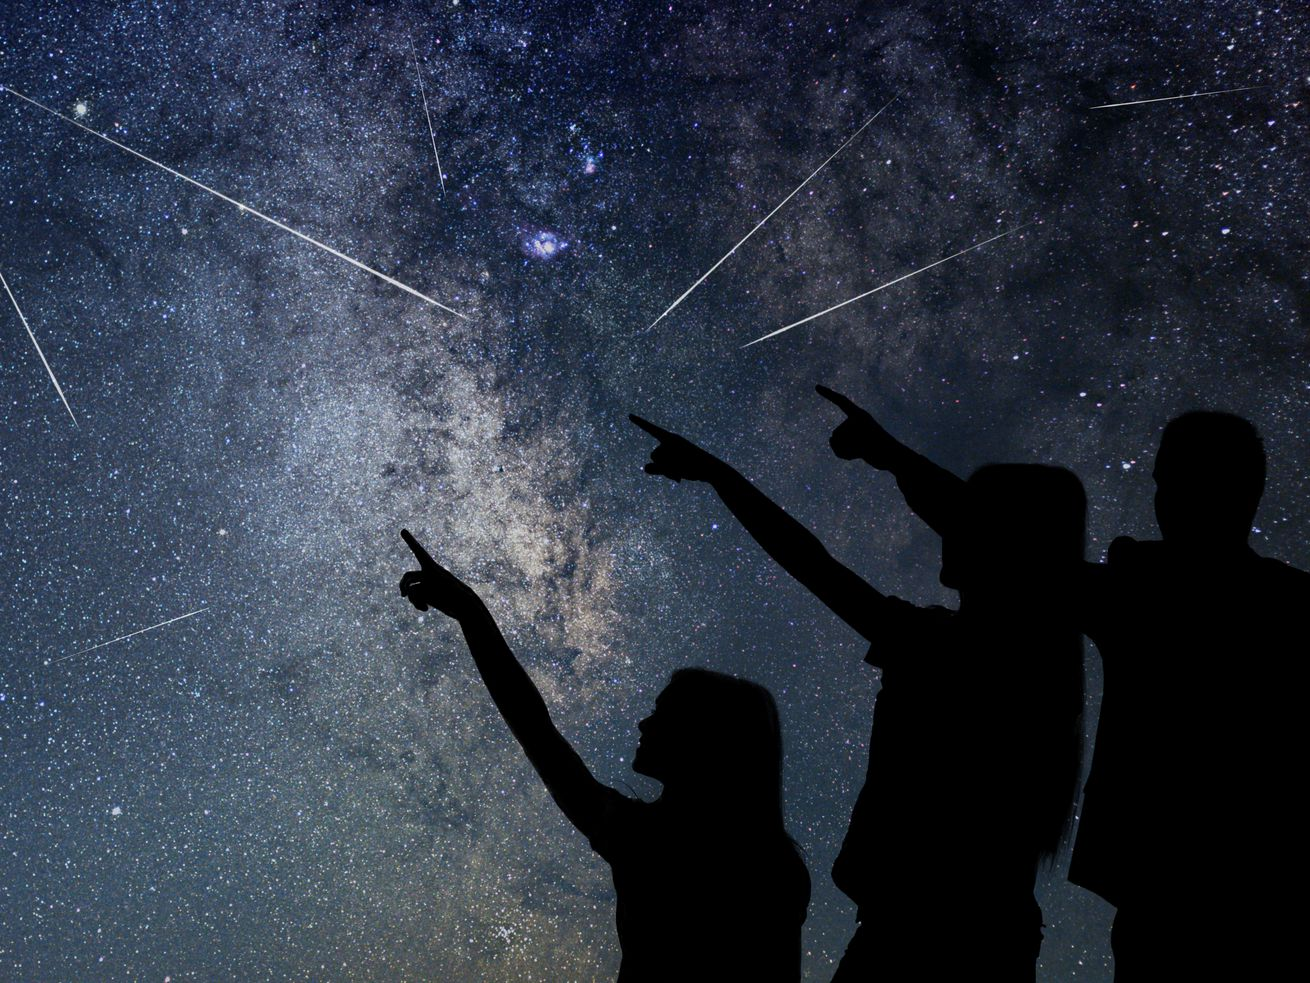 The Orionid meteor shower peaks tonight. Here's how to watch it